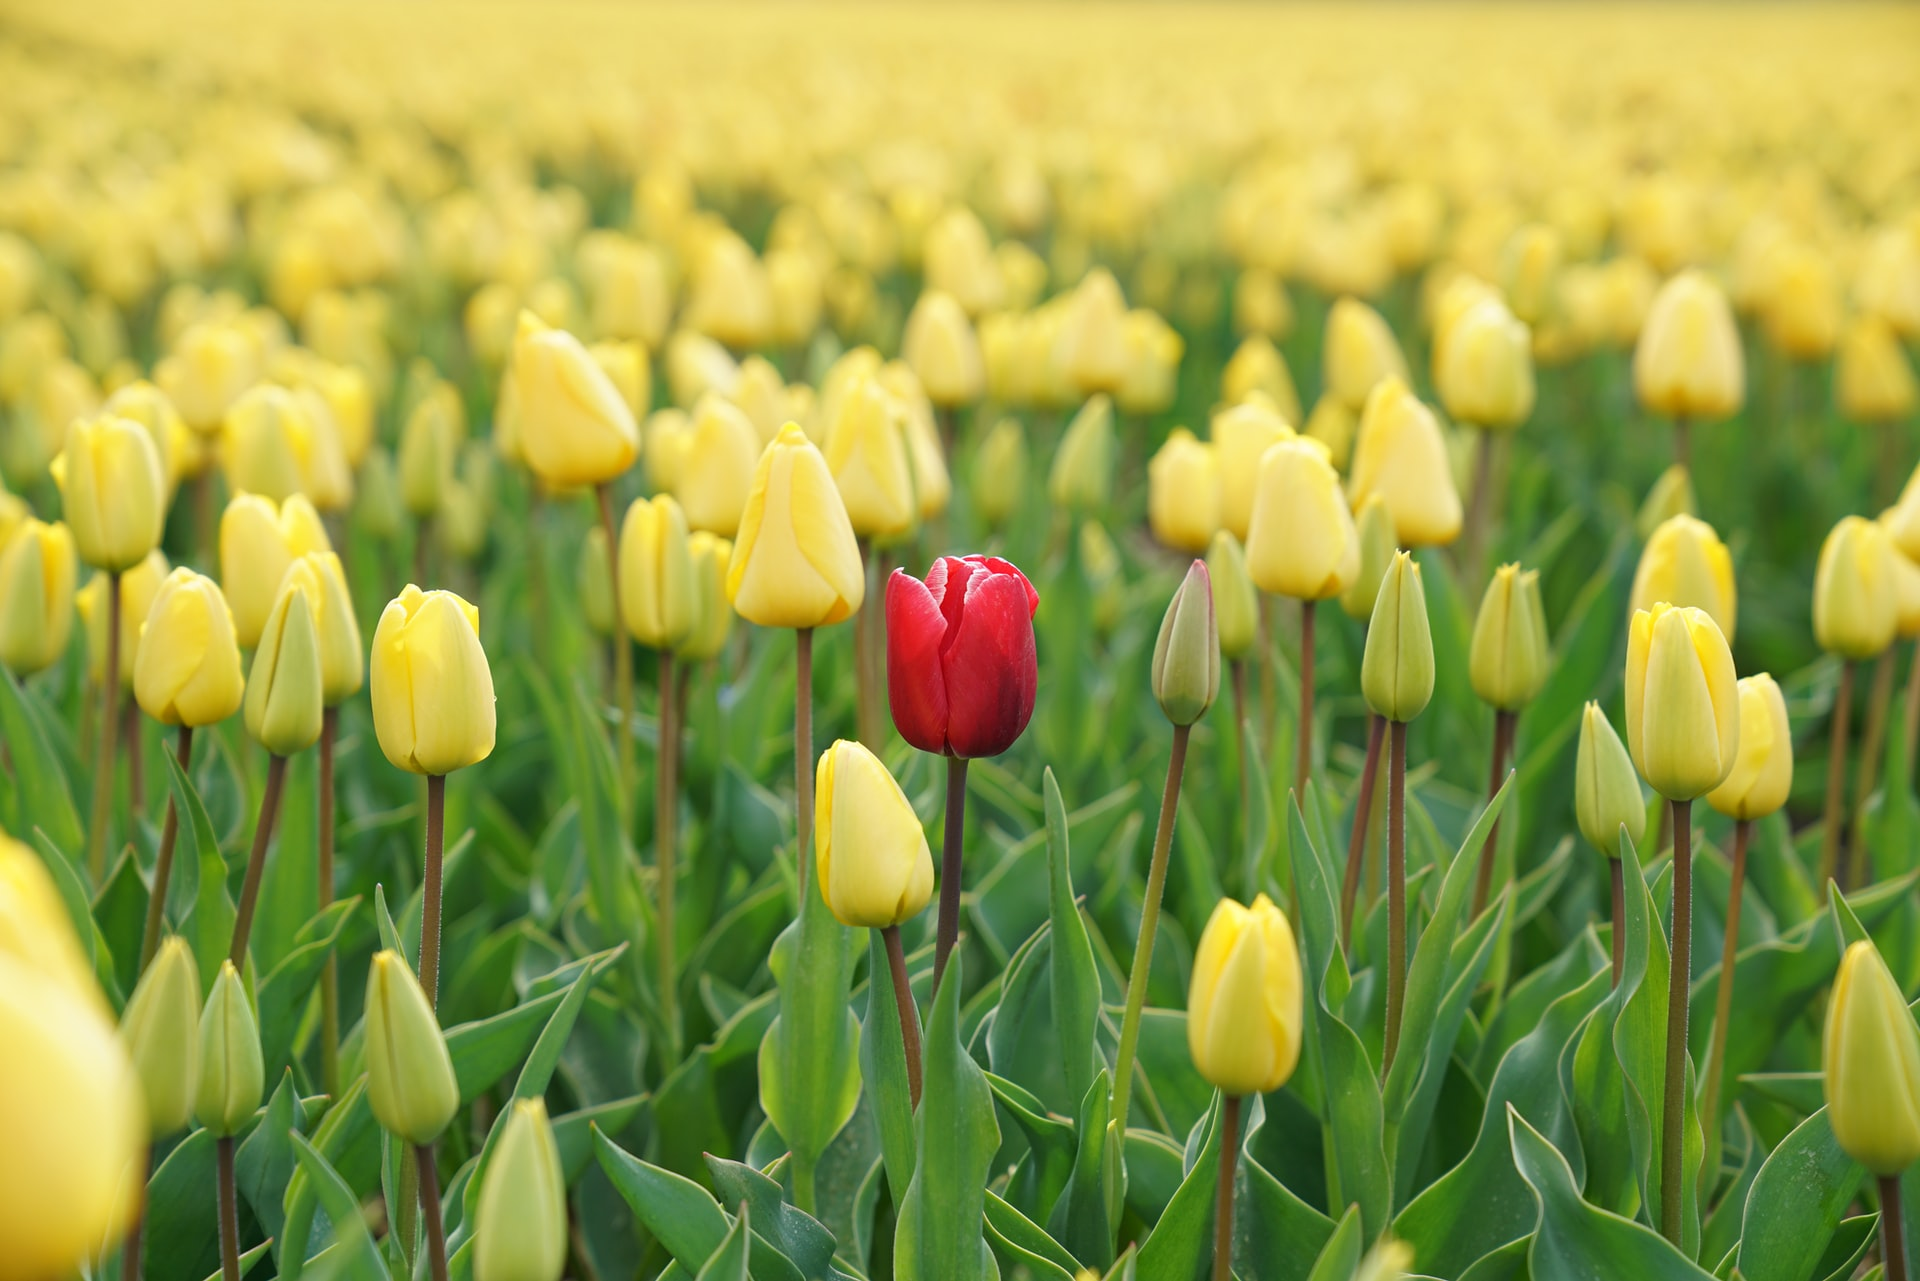 This image shows a field of flowers. All of the flowers are yellow except for one, which is red.